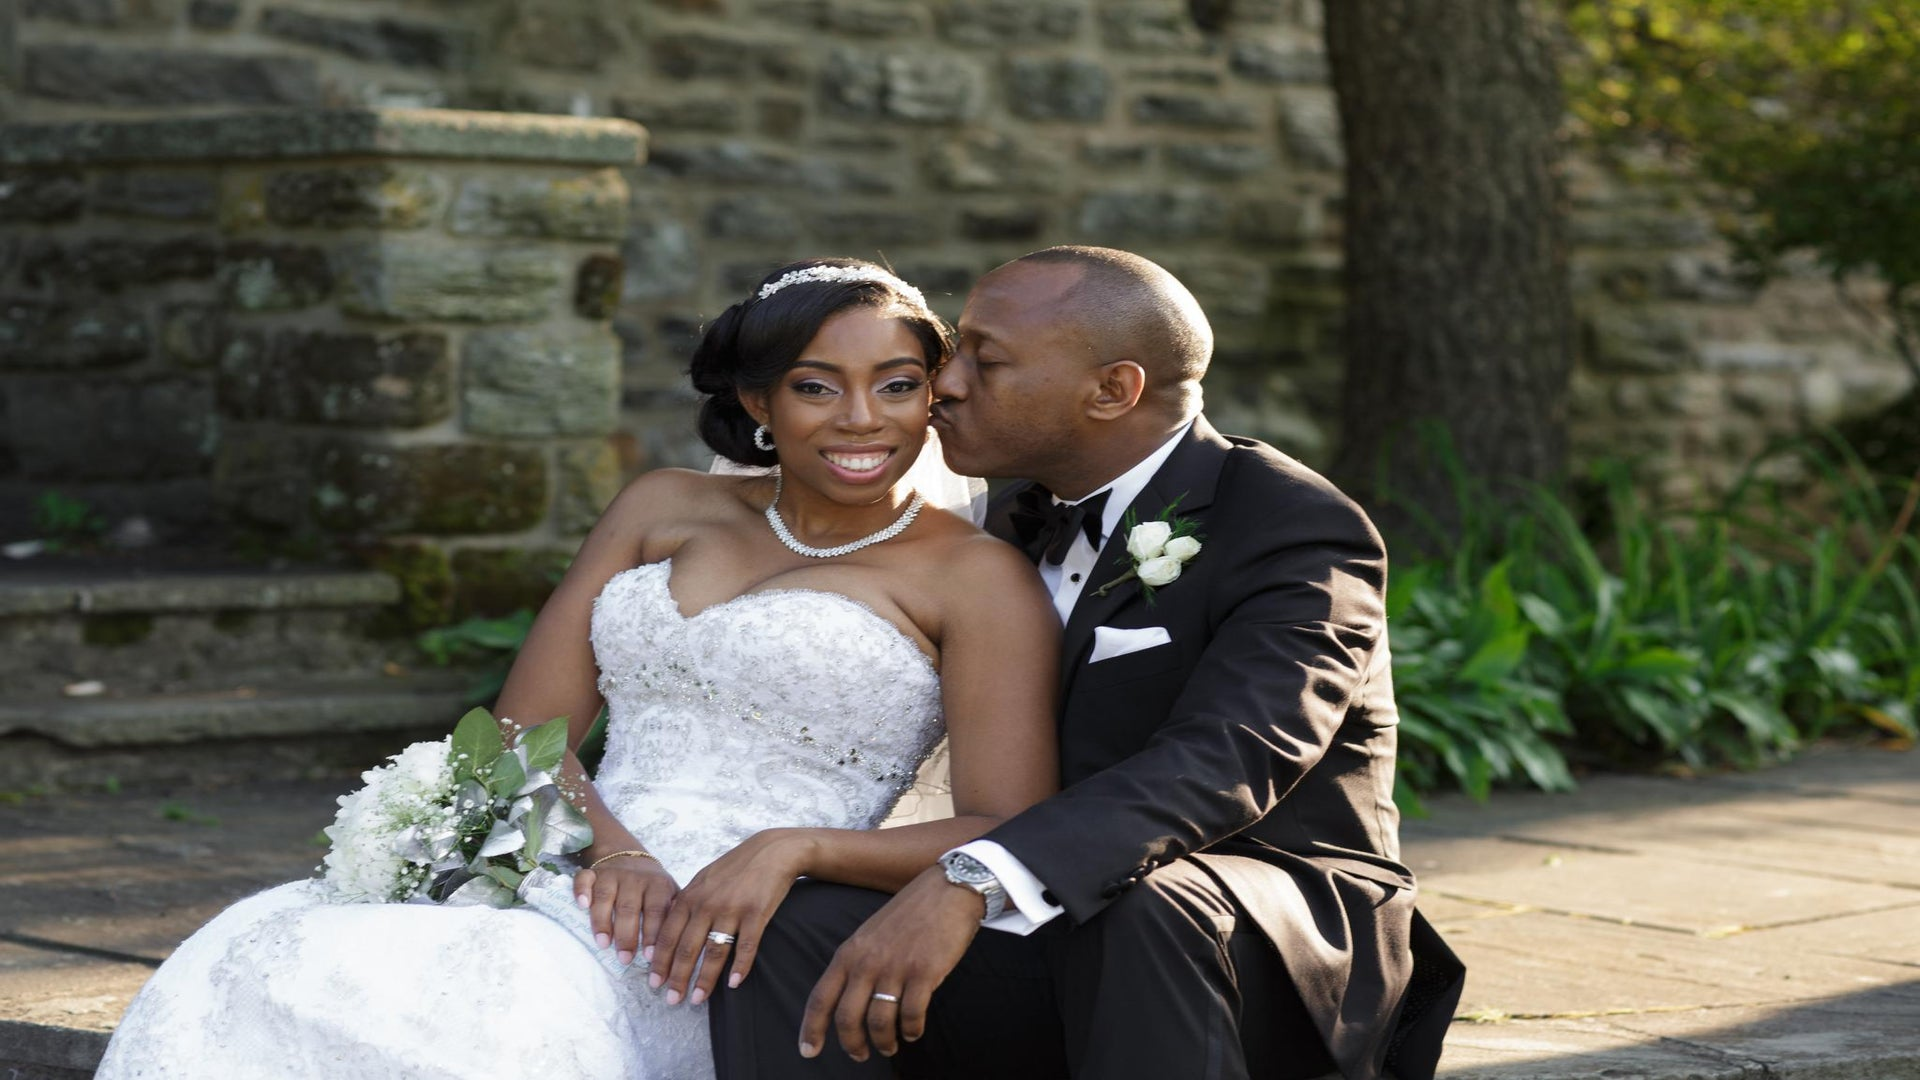 Bridal Bliss: Michelle and Kyrus' Pennsylvania Wedding